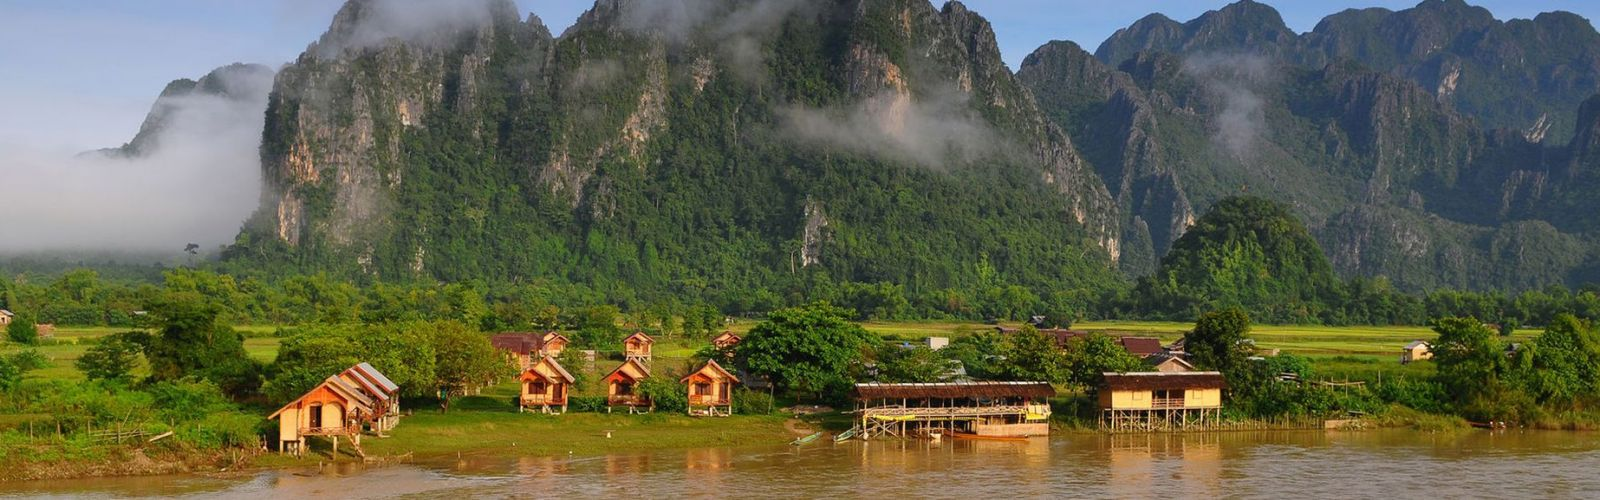 Laos Culture and History Tours